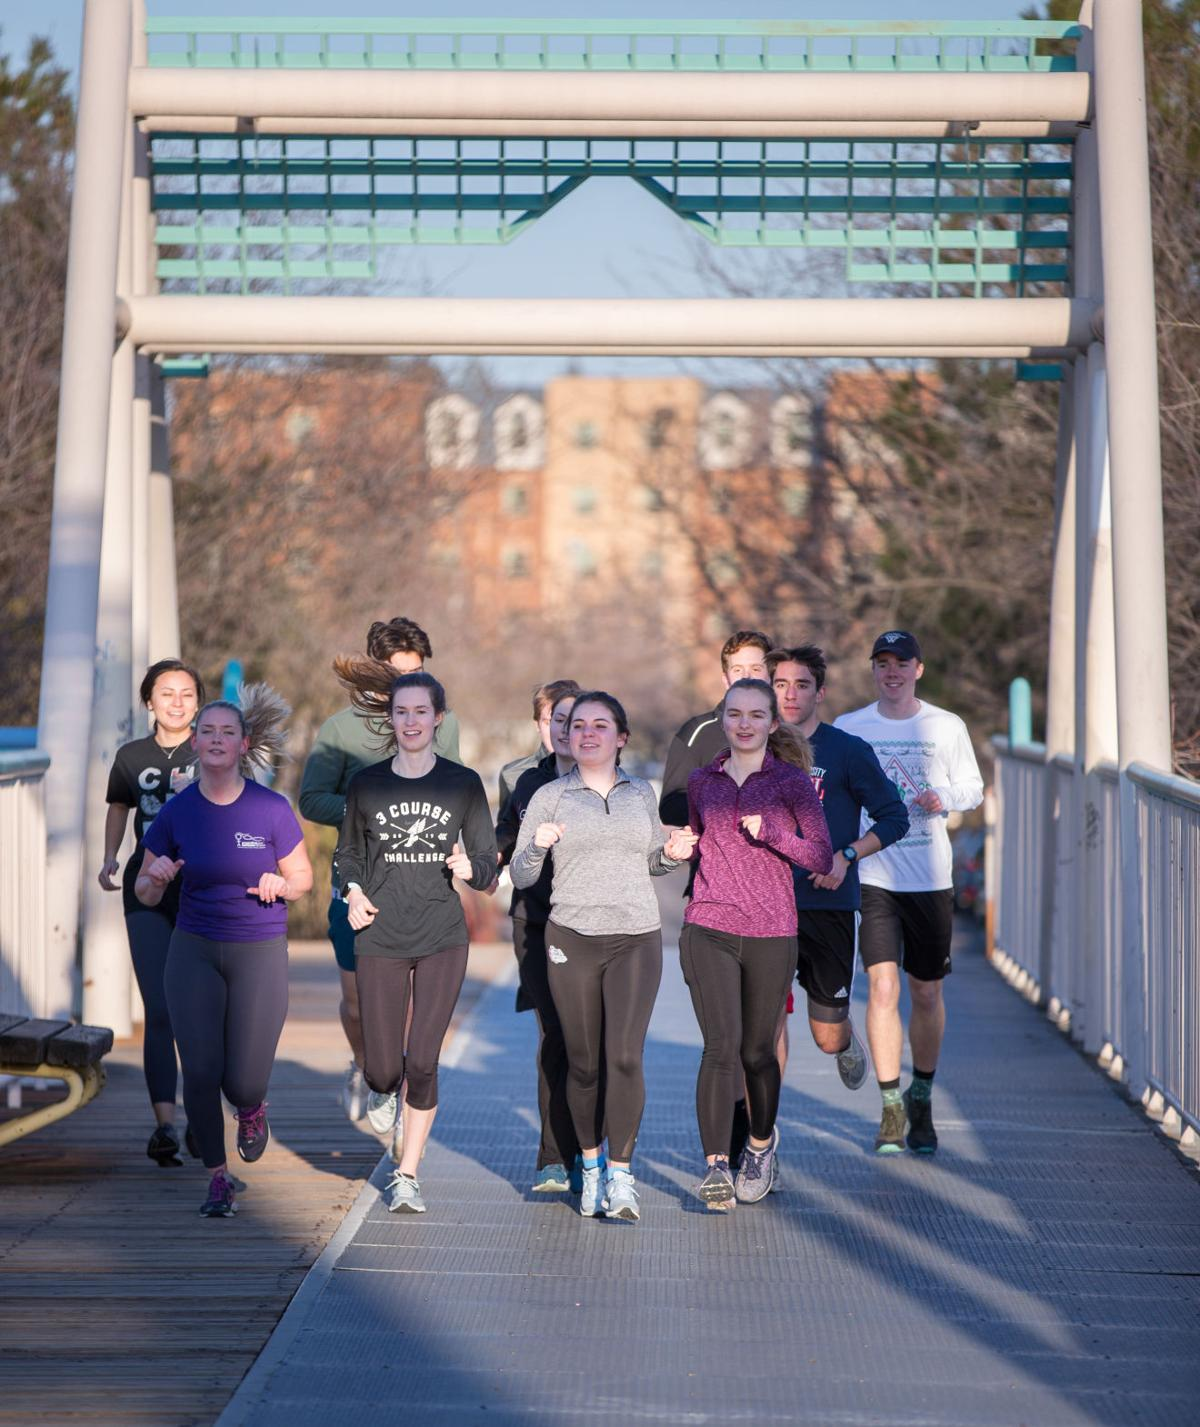 Gonzaga Running Club coming together to form new connections